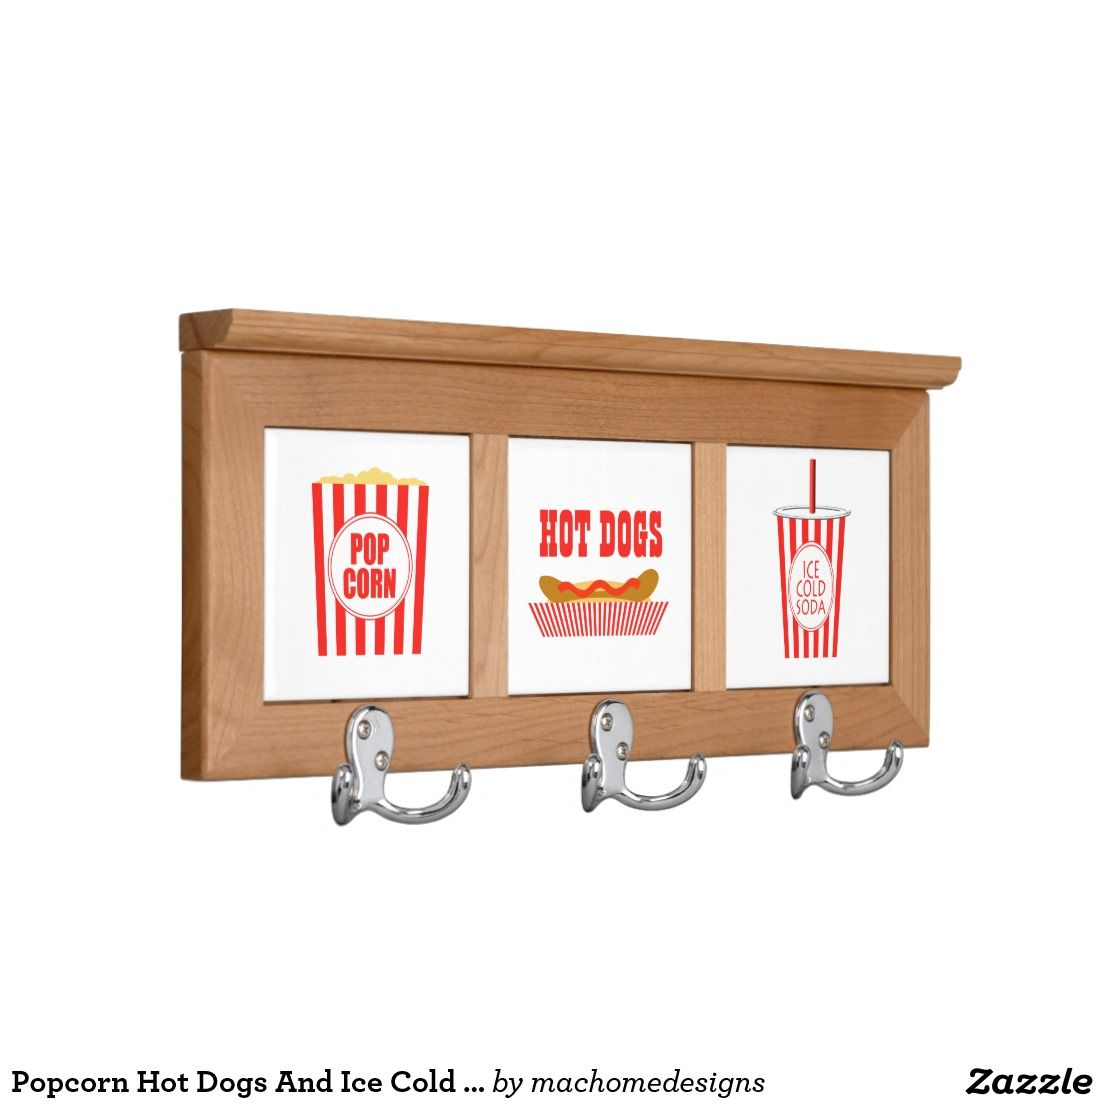 Theater Room Snack Bar: Popcorn Hot Dogs And Ice Cold Soda Signs Coat Rack